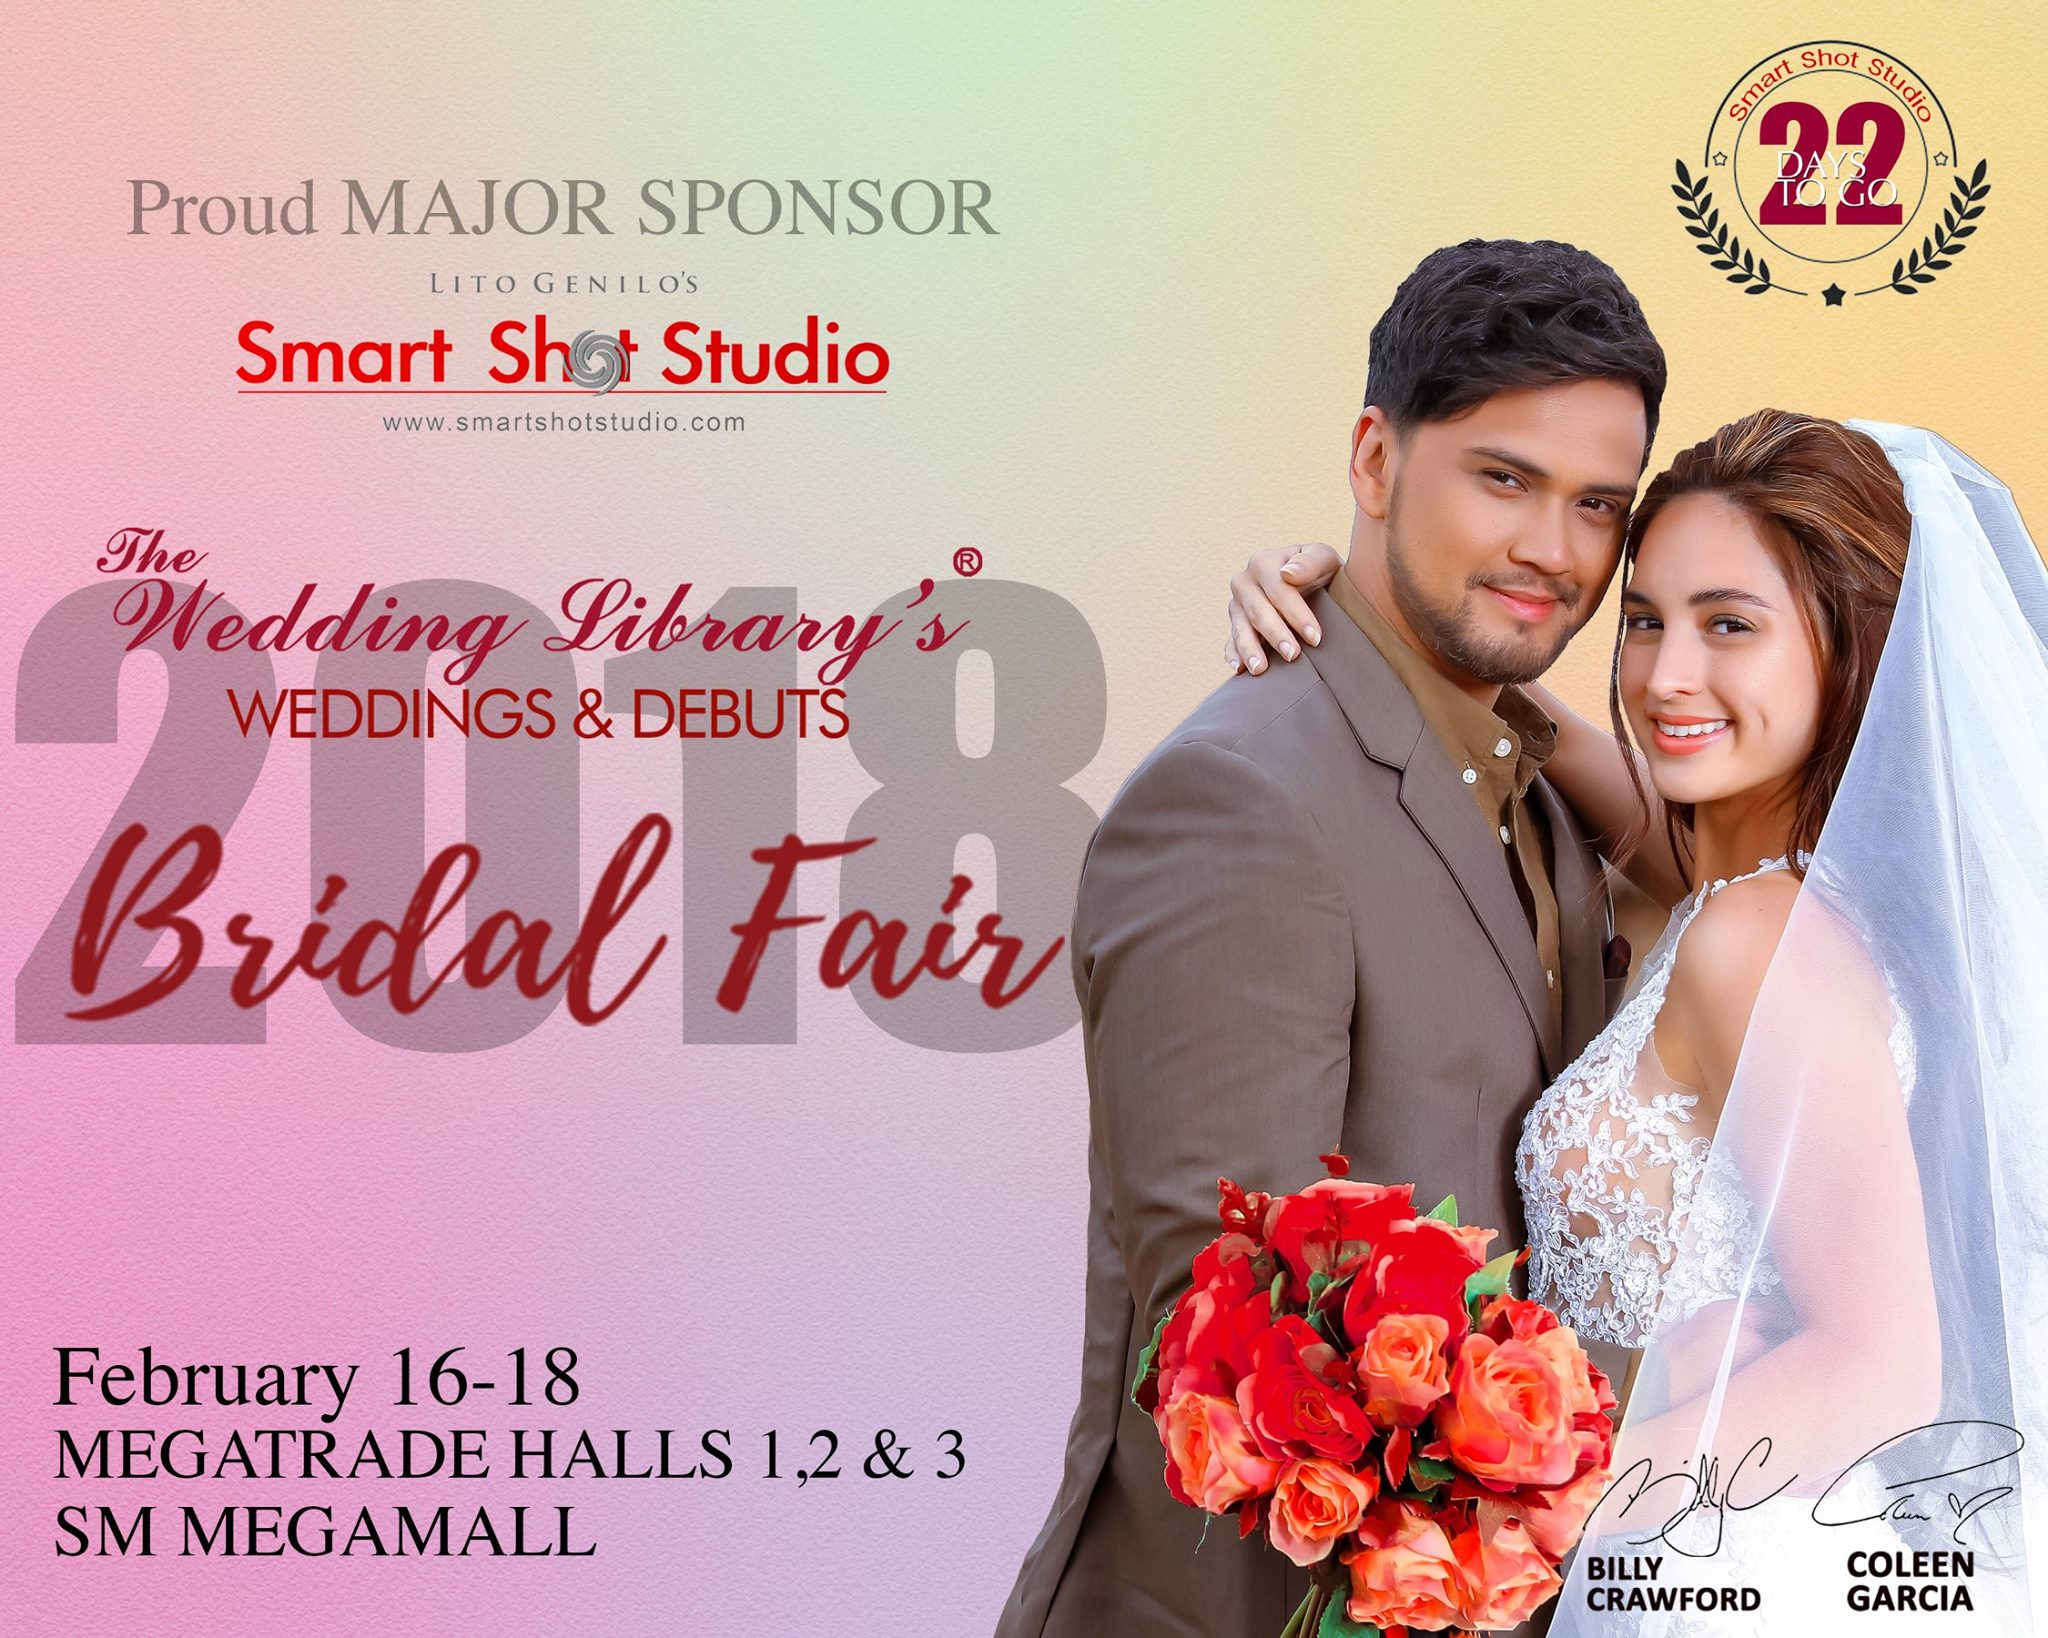 weddings and debuts bridal fair smart shot studioweddings and debuts bridal fair smart shot studio